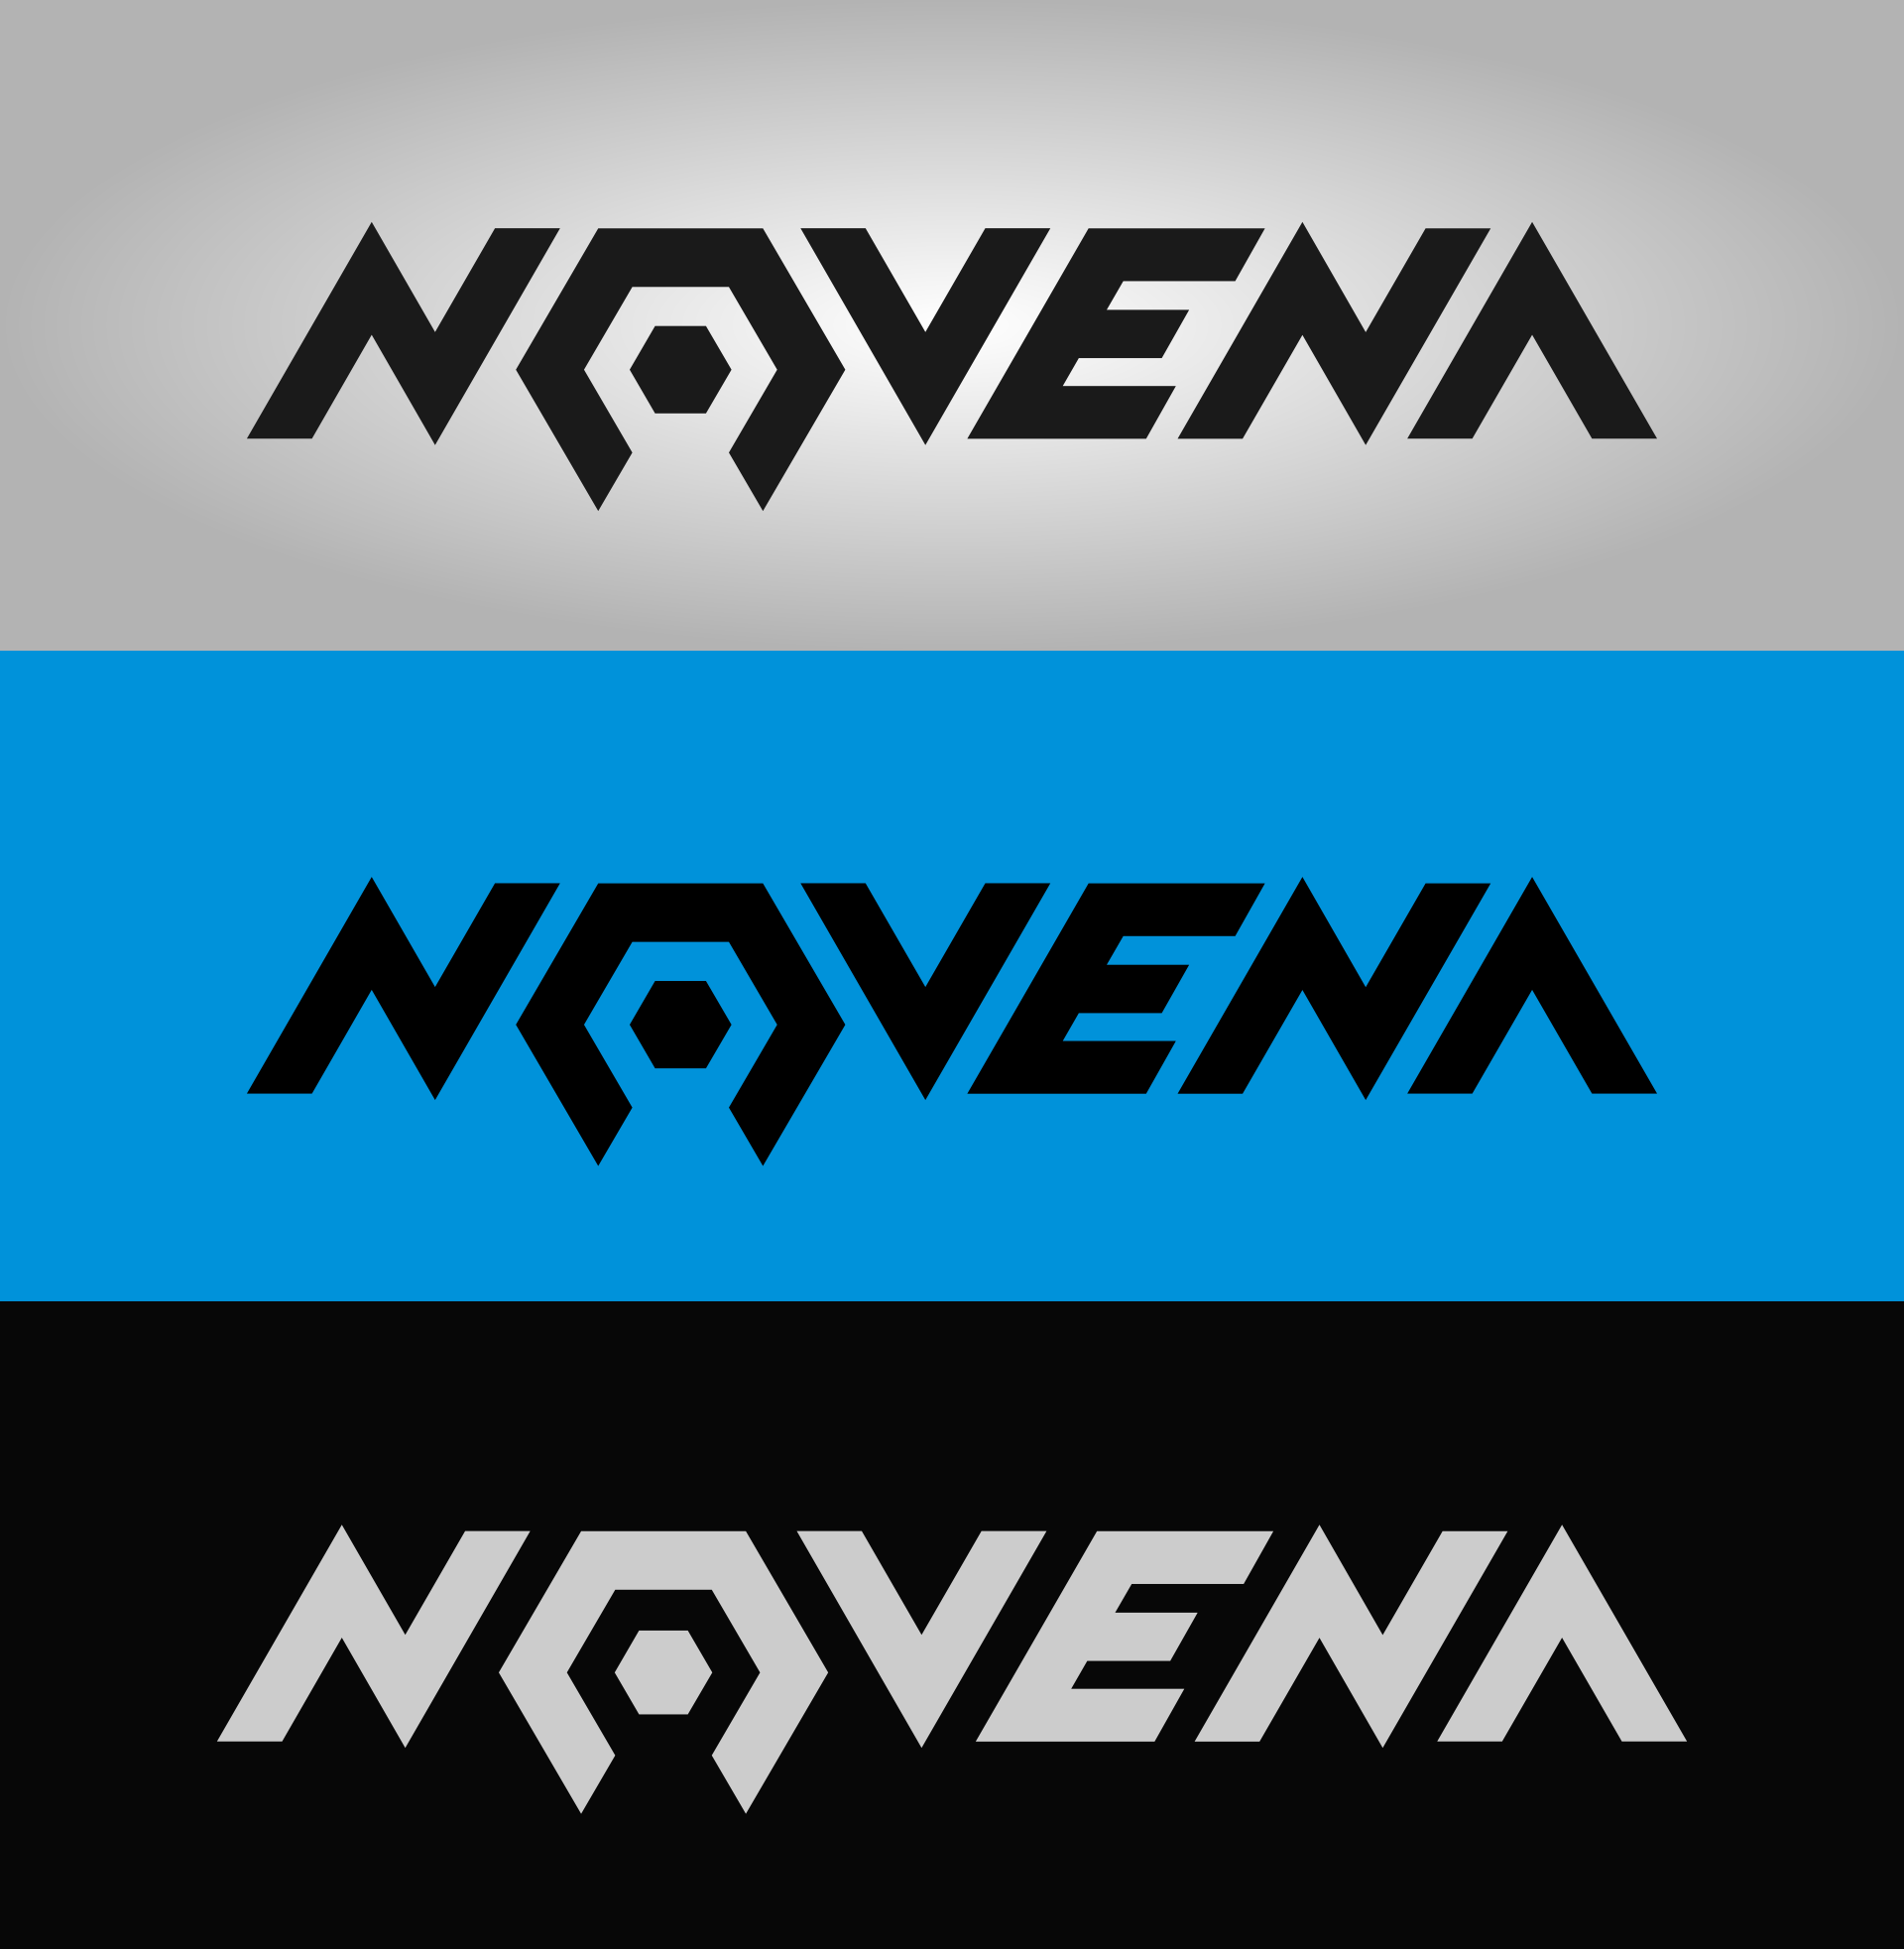 Novena logo on three different backgrounds